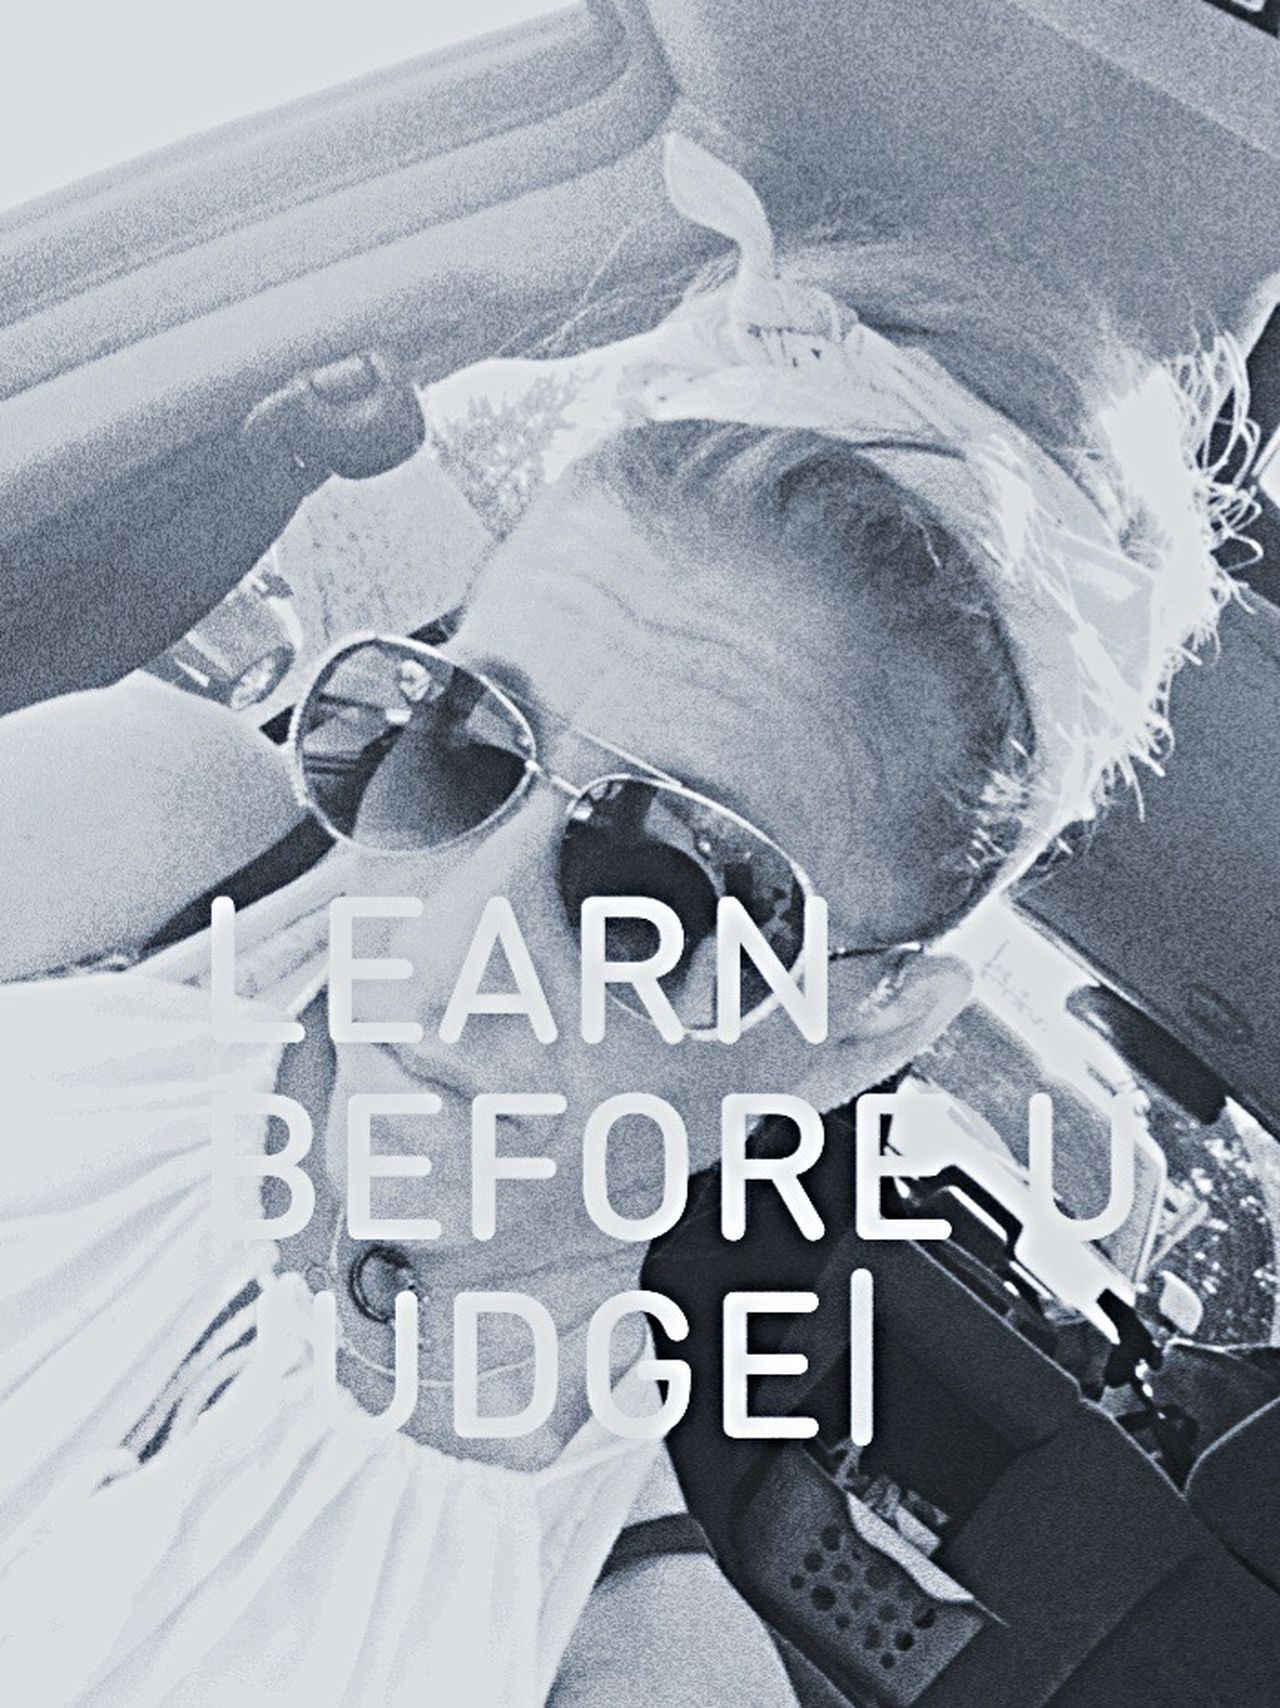 Telling Stories Differently Not Everything is as it SEEMS ~ LEARN BEFORE YOU JUDGE Invisable Disability Living With Chronic Pain STOP THE STIGMAS! Educate Yourself! Ignorance Leads To Stupidity